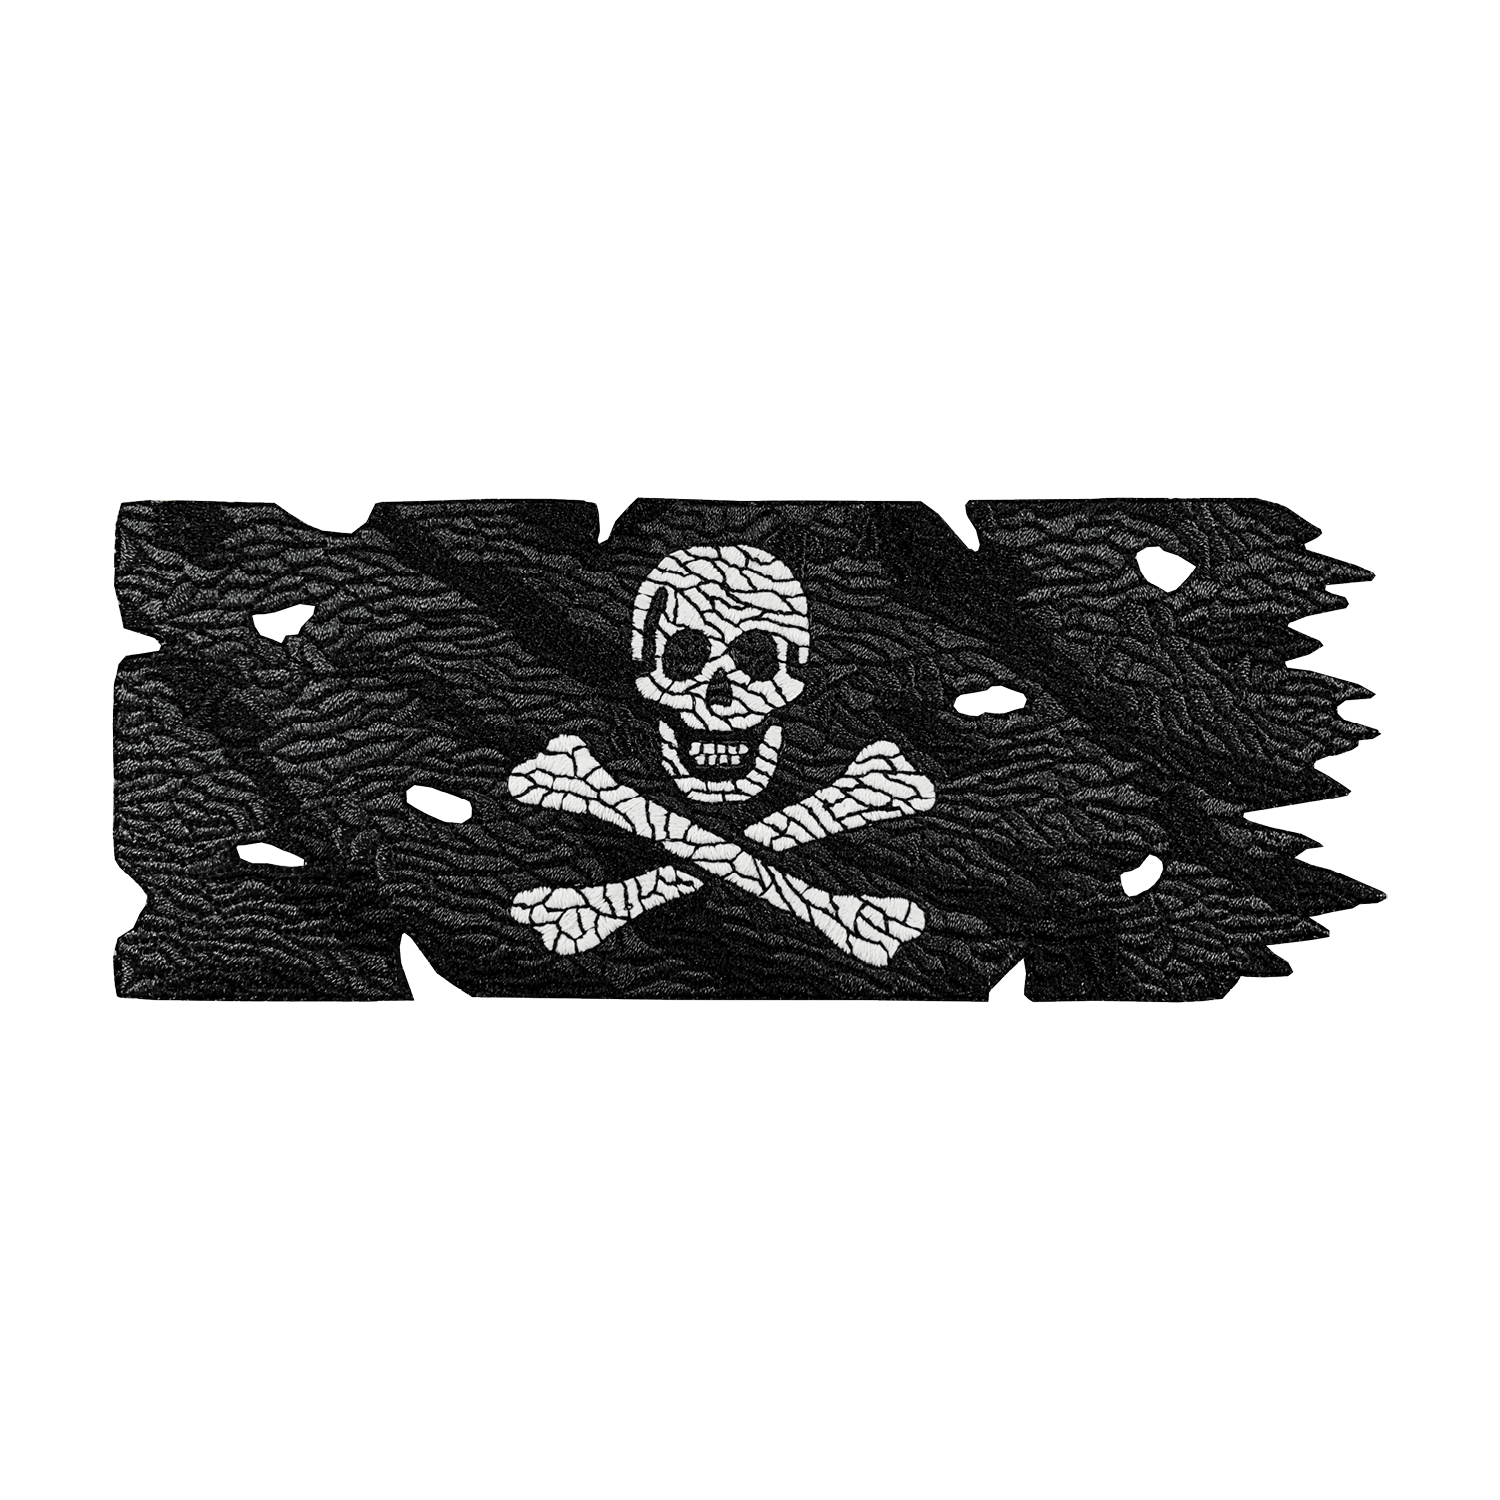 Black Sam Pirate Flag [v5] Patch